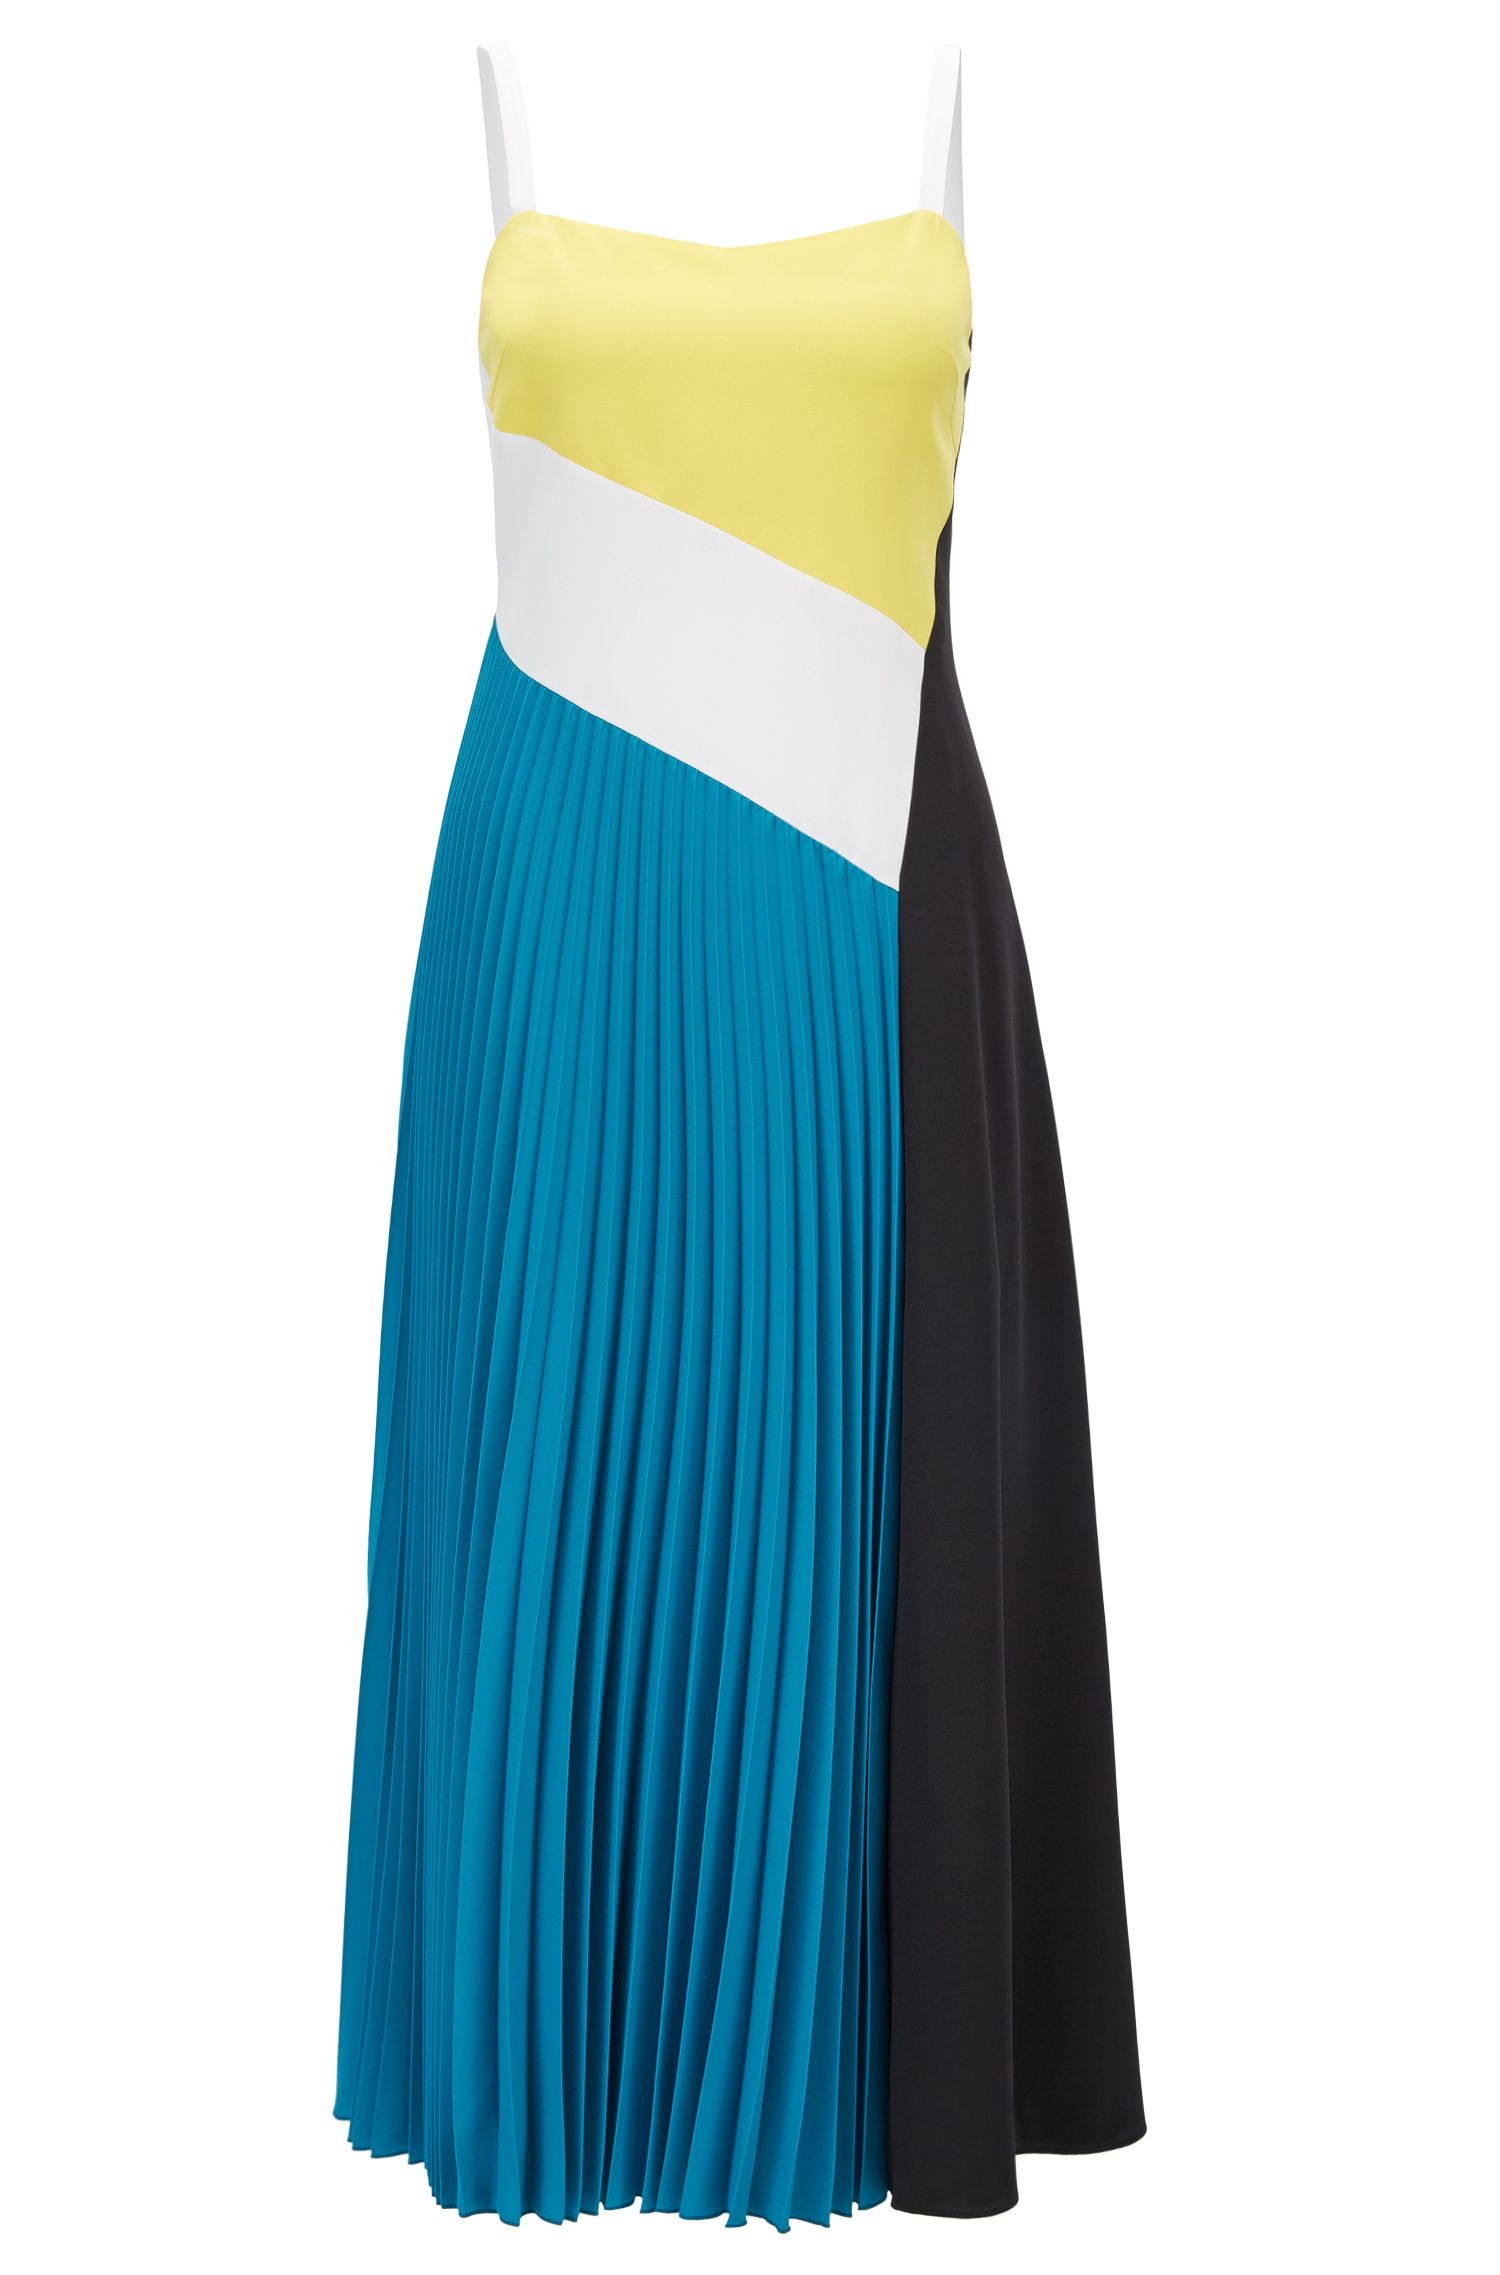 Colour-Block-Kleid aus elastischem Material-Mix aus der Gallery Kollektion